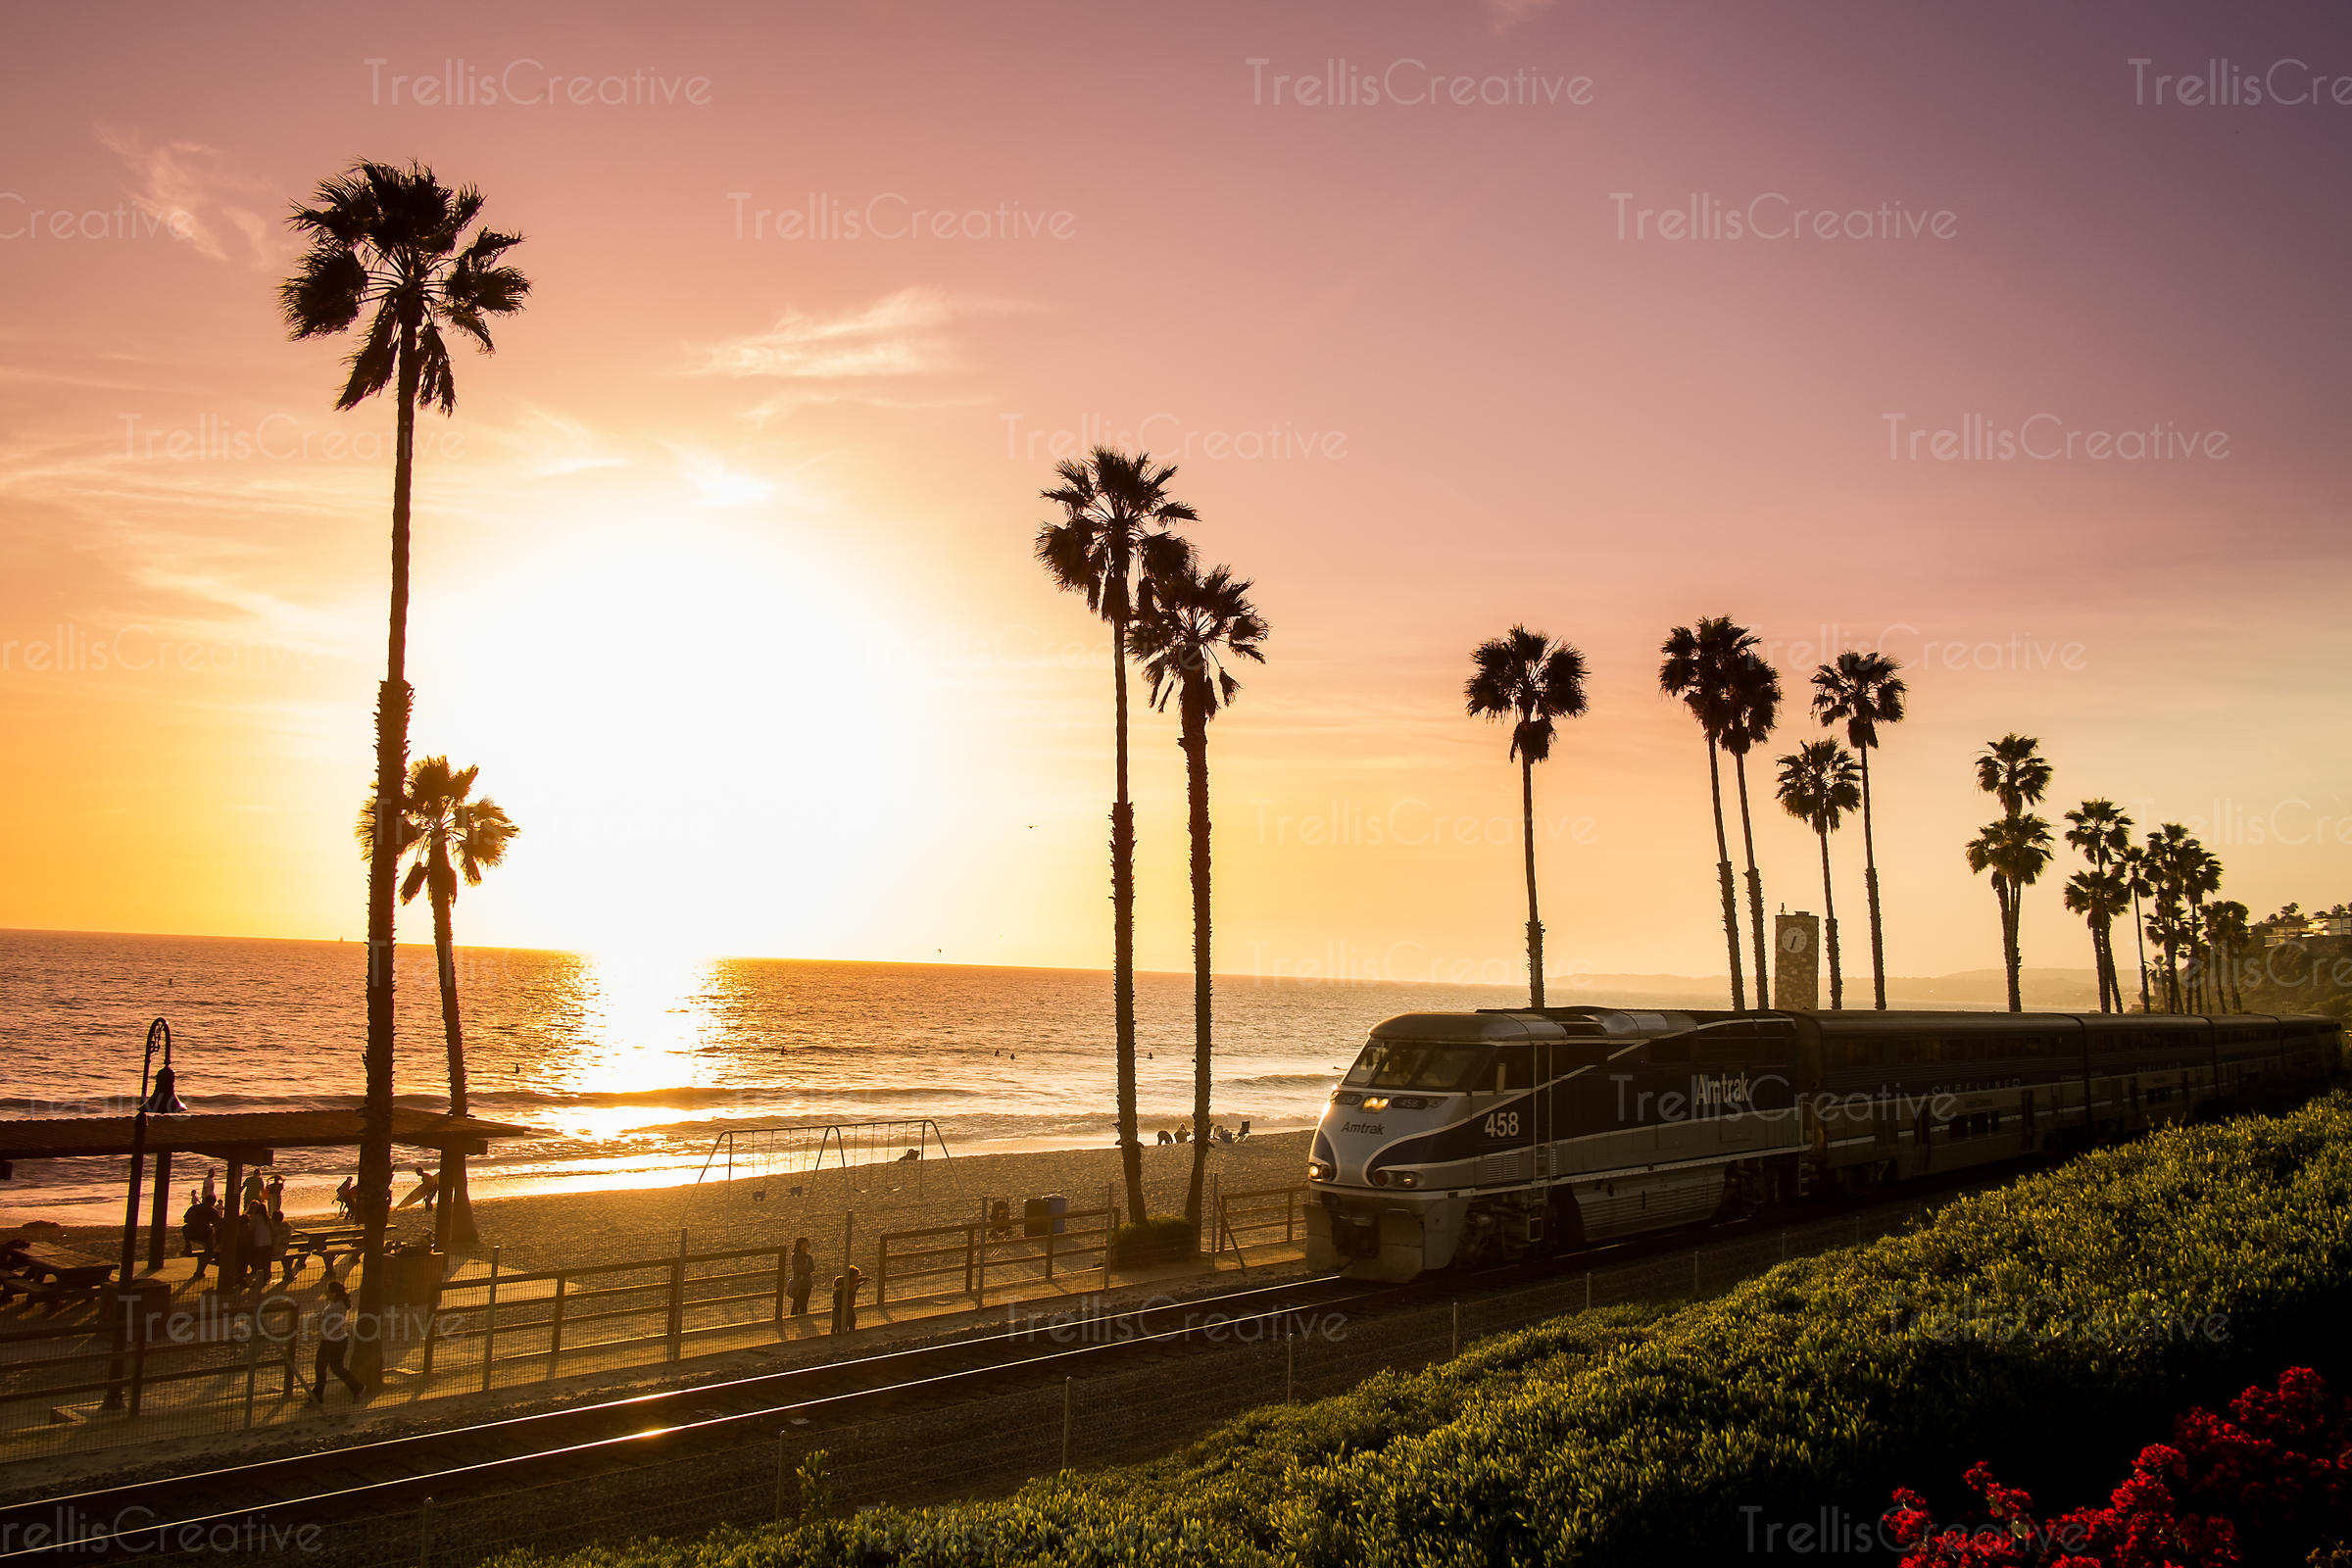 Amtrak train travels along the beach in San Clemente, California during a colorful sunset